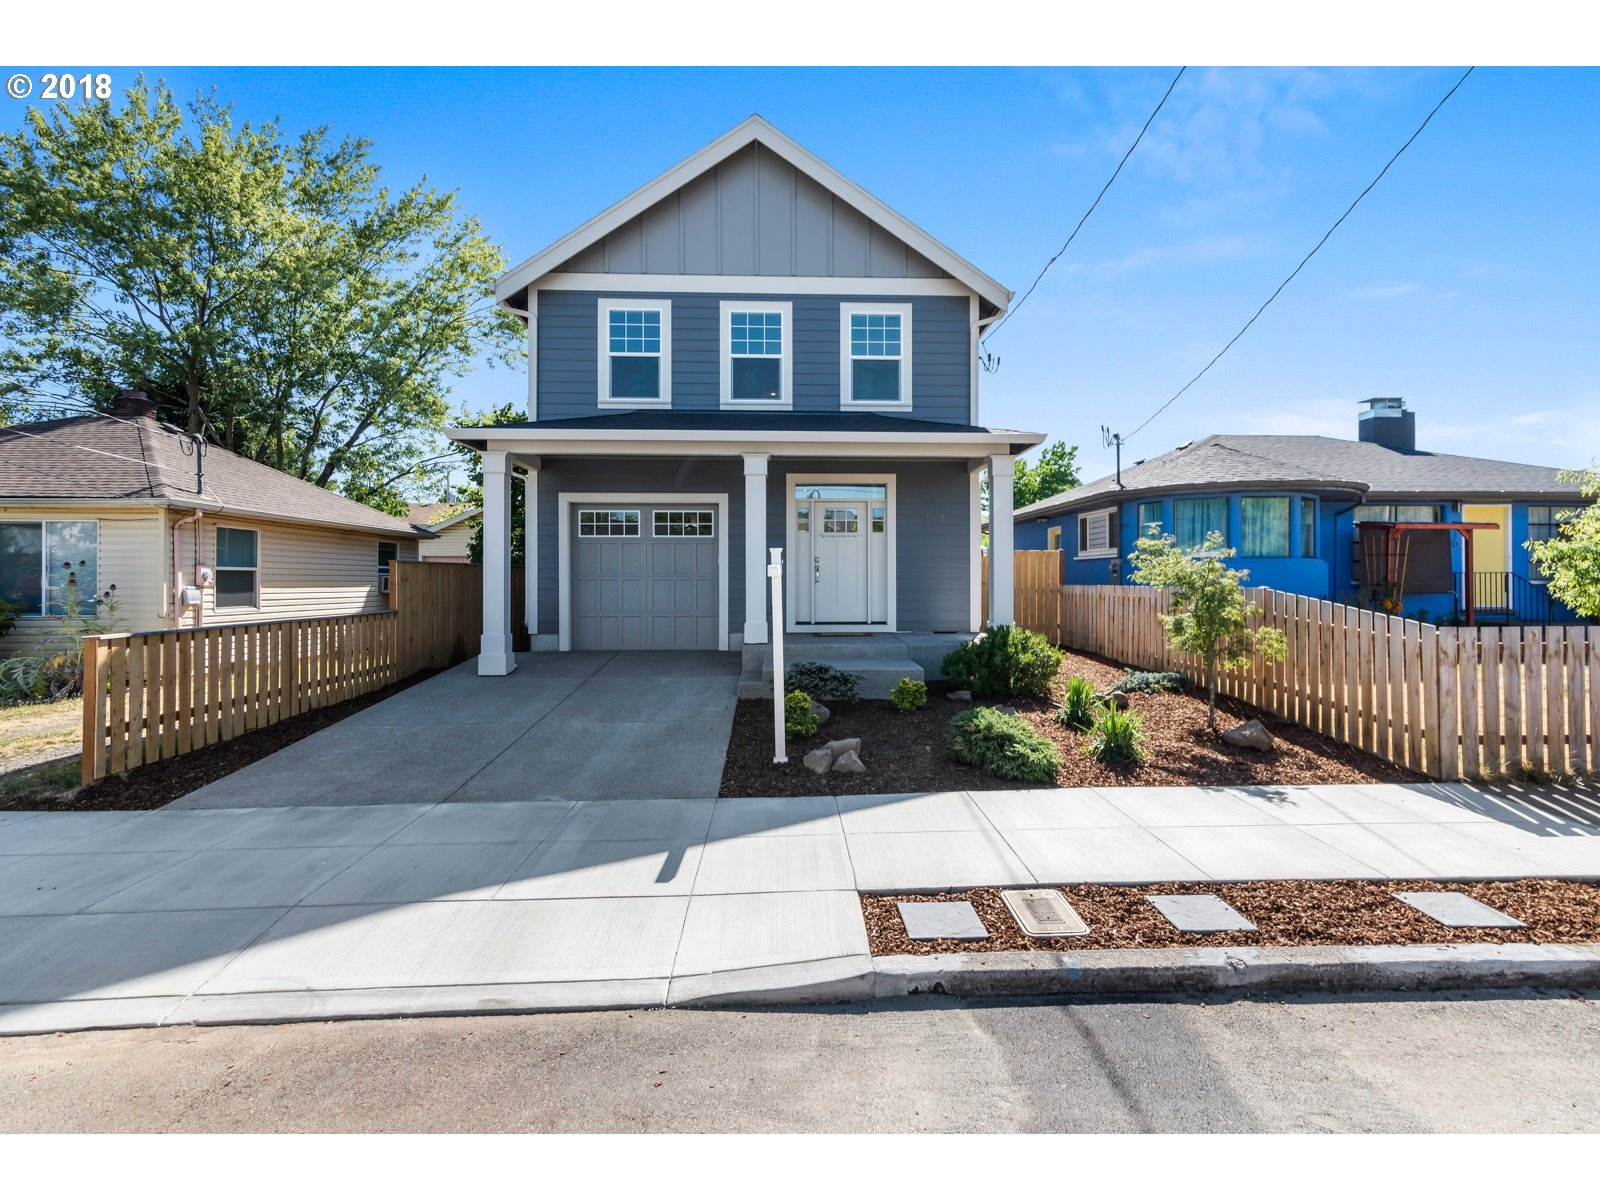 818 NE 77TH AVE, PORTLAND, OR 97035 | MLS# 18032259 – PDX Listed